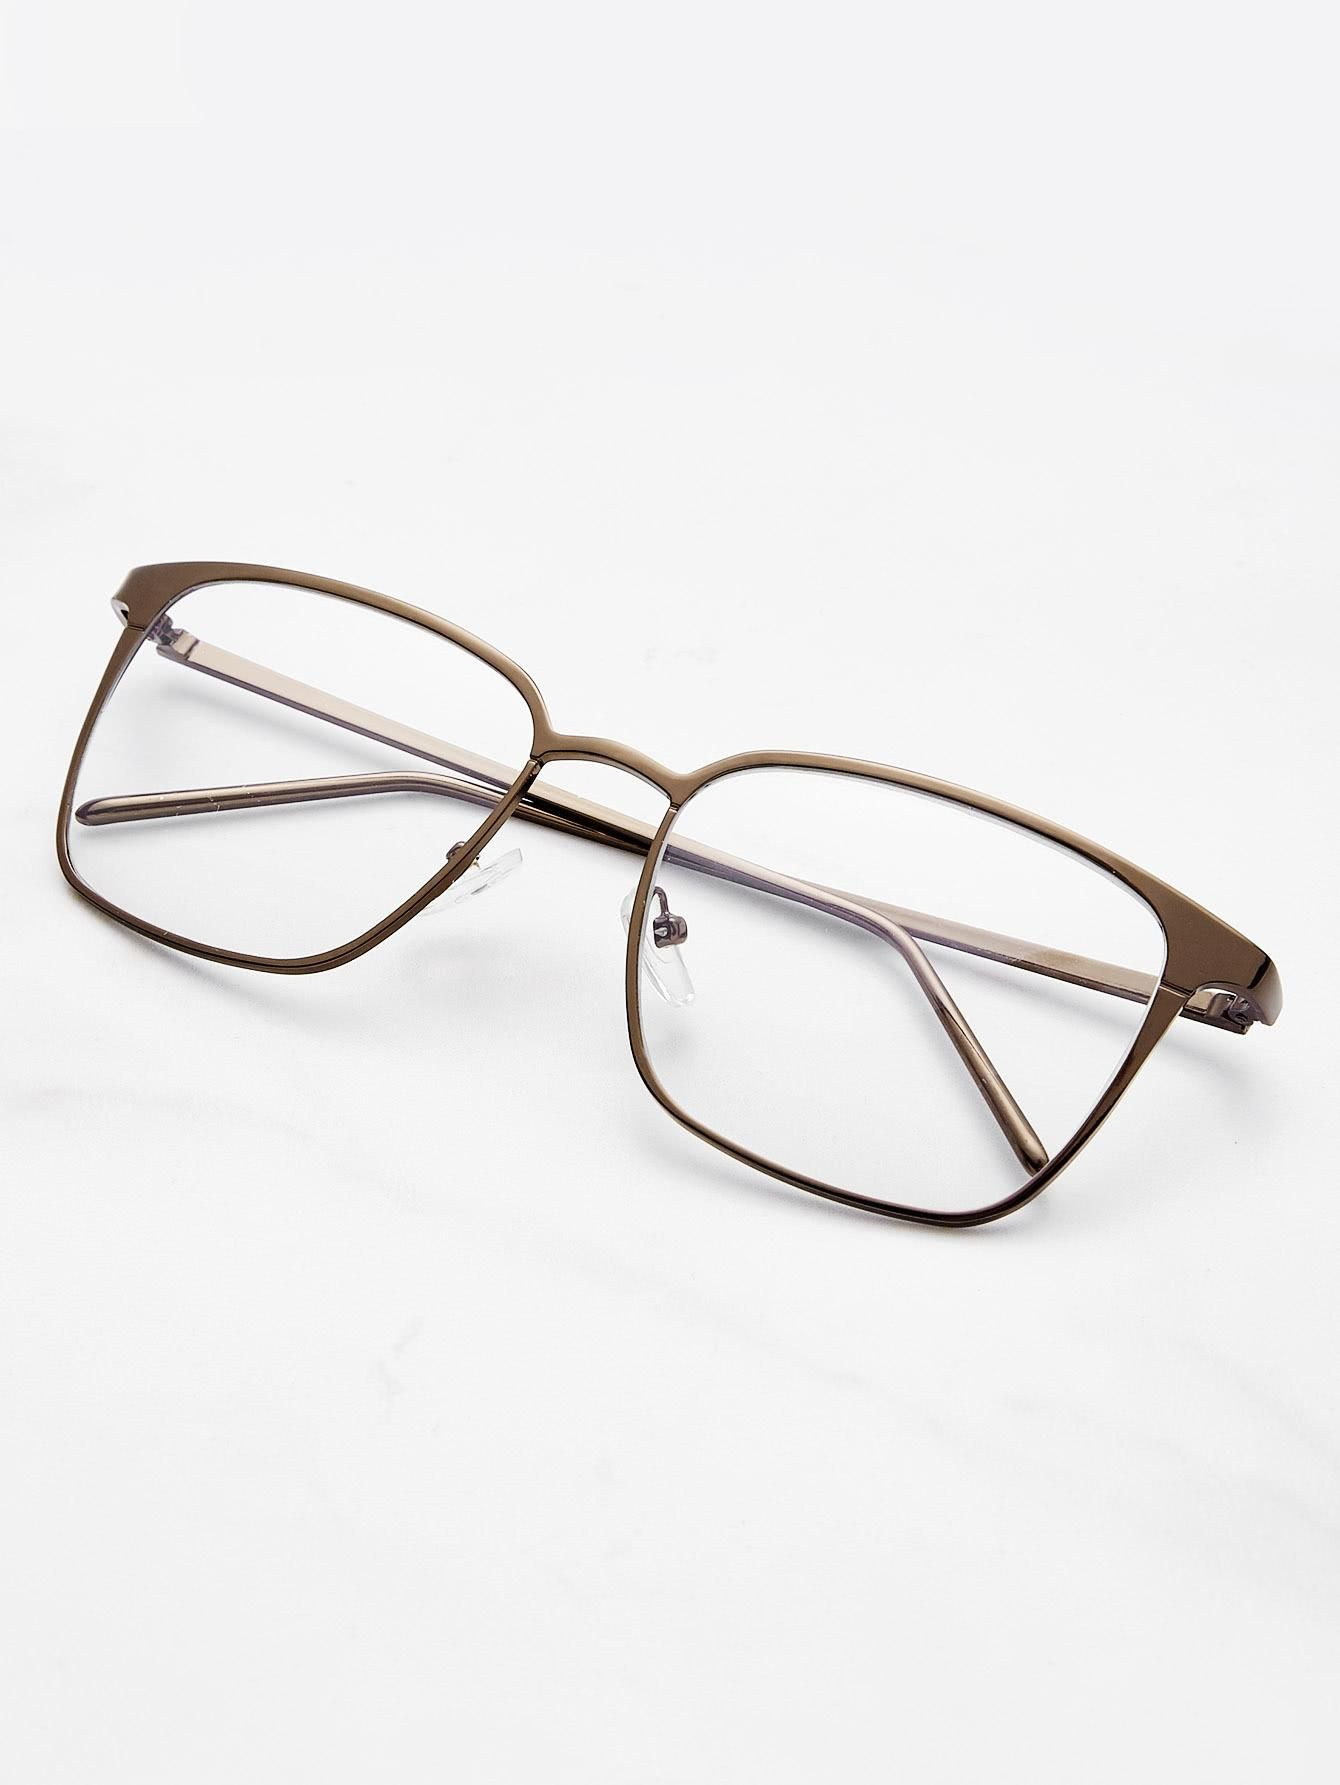 Skinny Frame Square Glasses | Romwe, Skinny and Squares